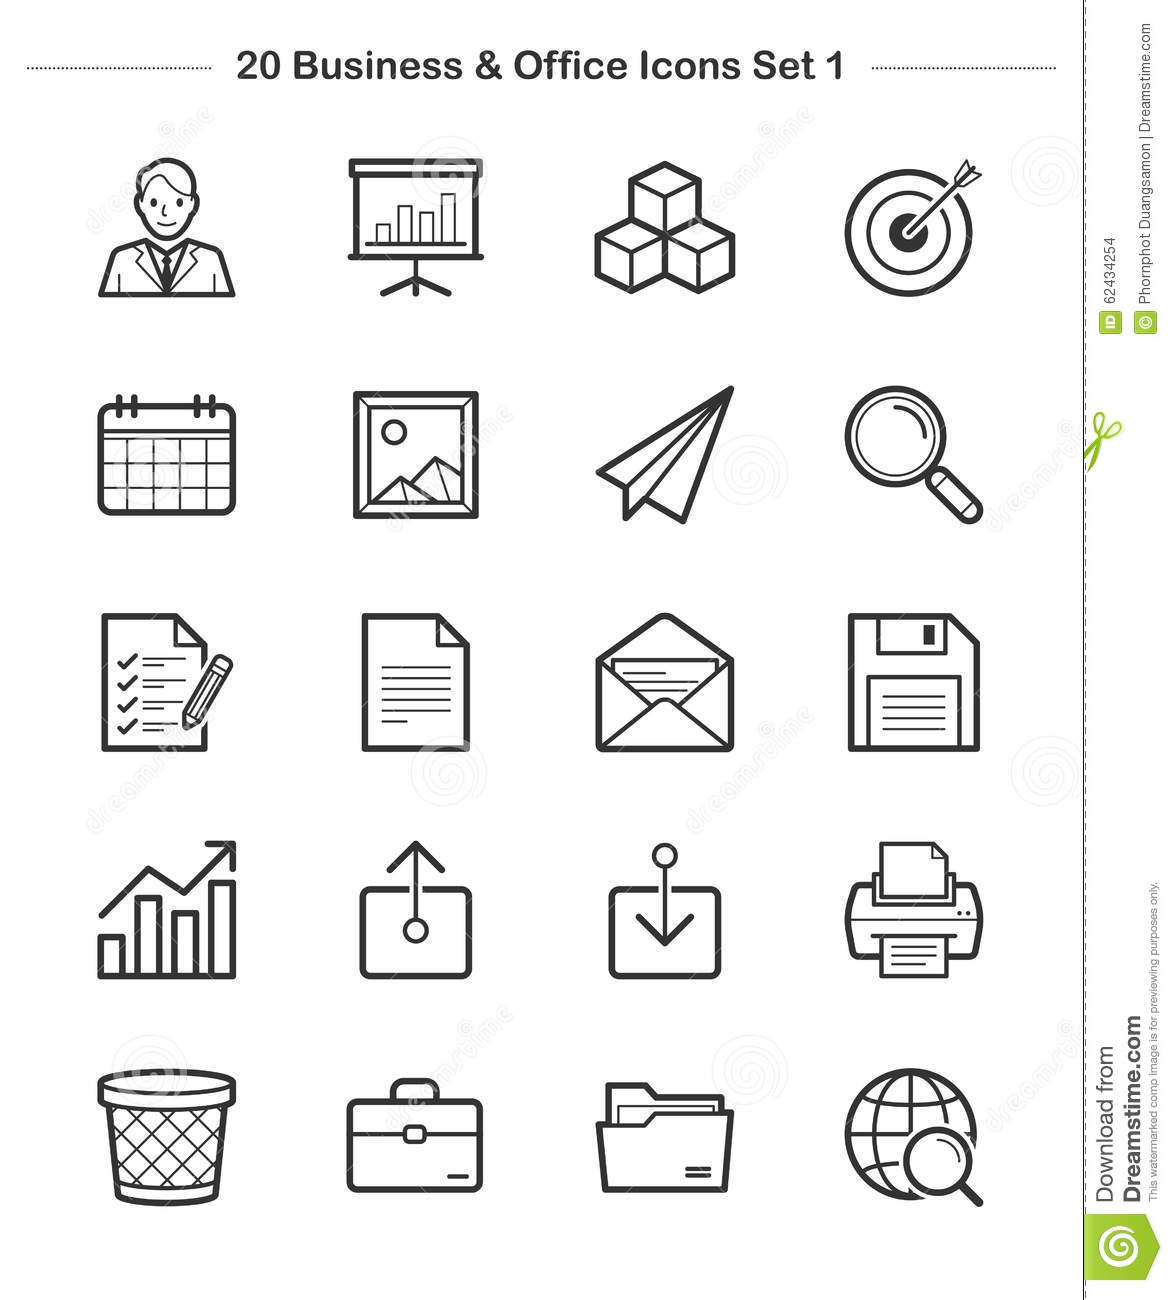 Business & Office Icons Set 1, Line Thickness Icons Stock